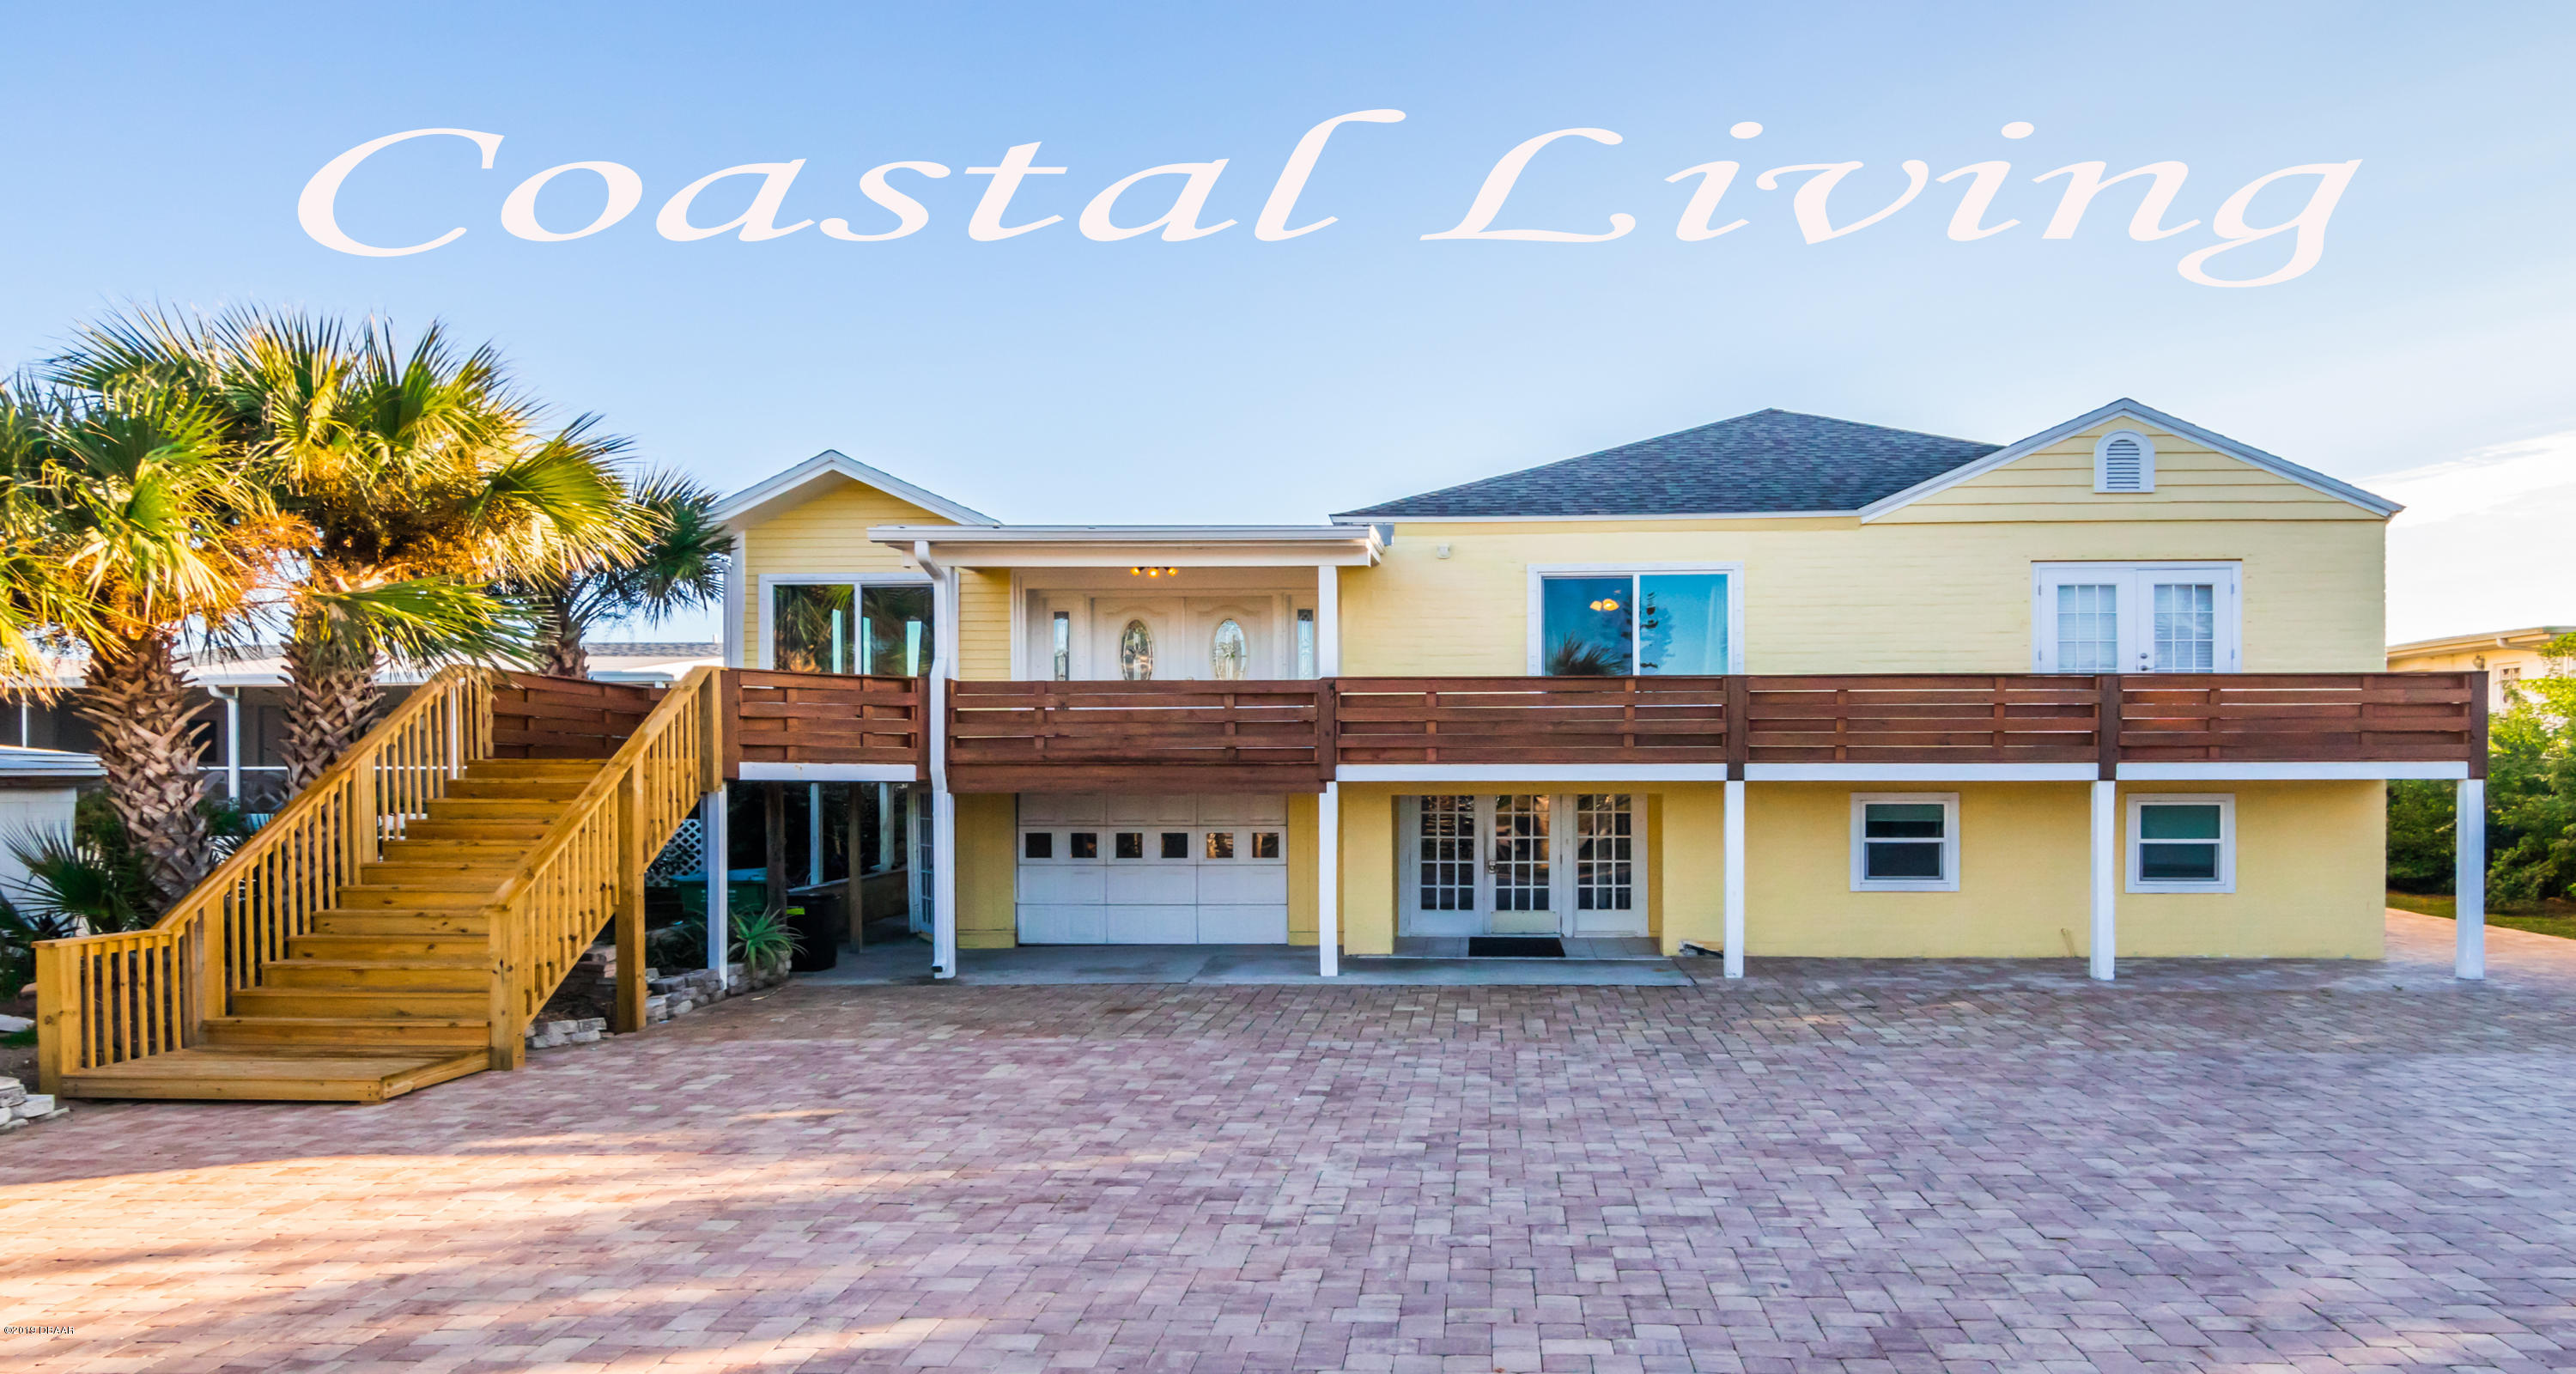 2801 S Atlantic Avenue, Daytona Beach Shores, Florida